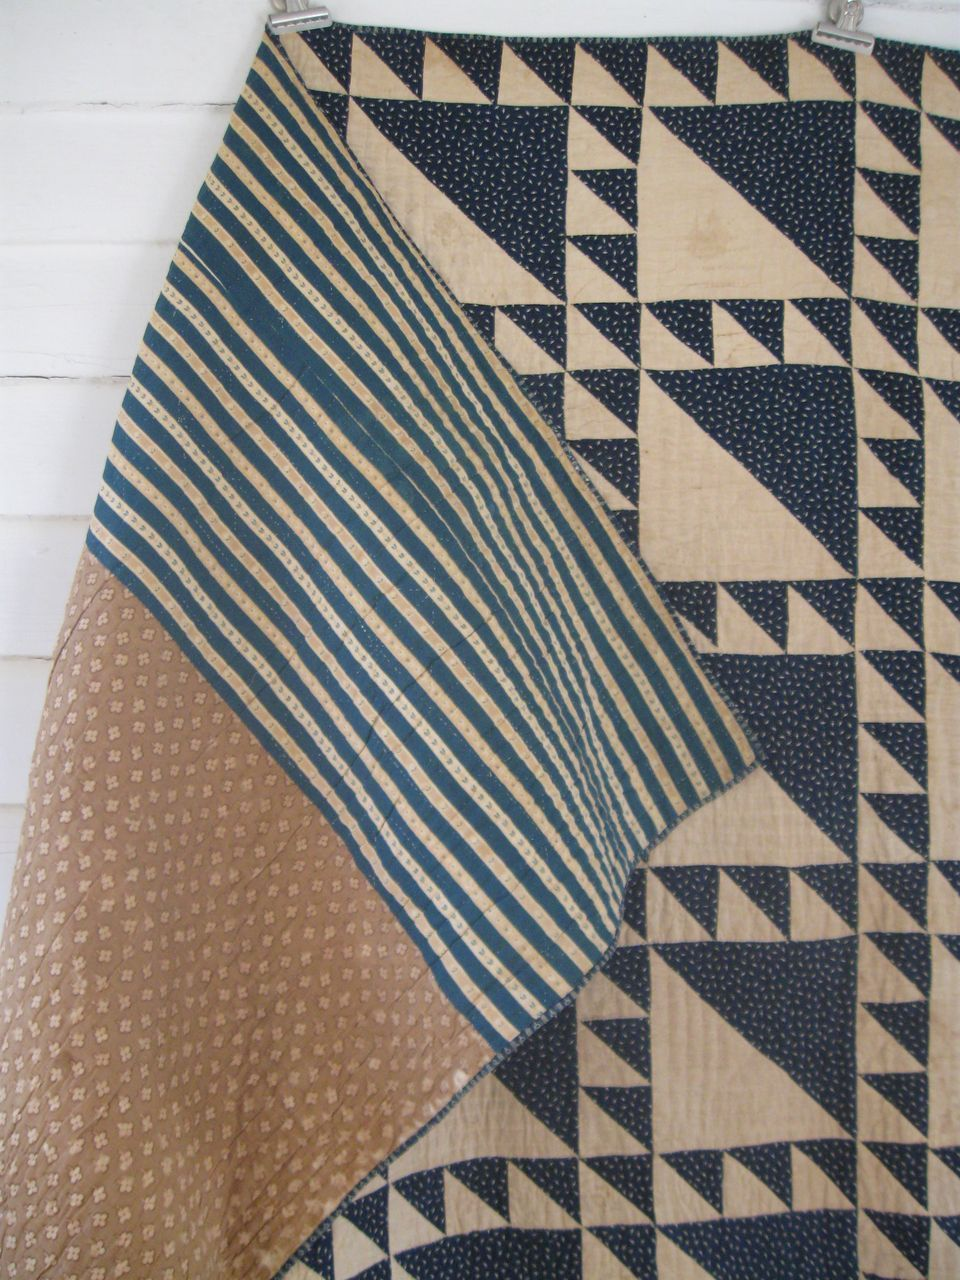 Antique Indigo Calico, Lady of the Lake Quilt, 19th C. Love the simple, pretty pattern.